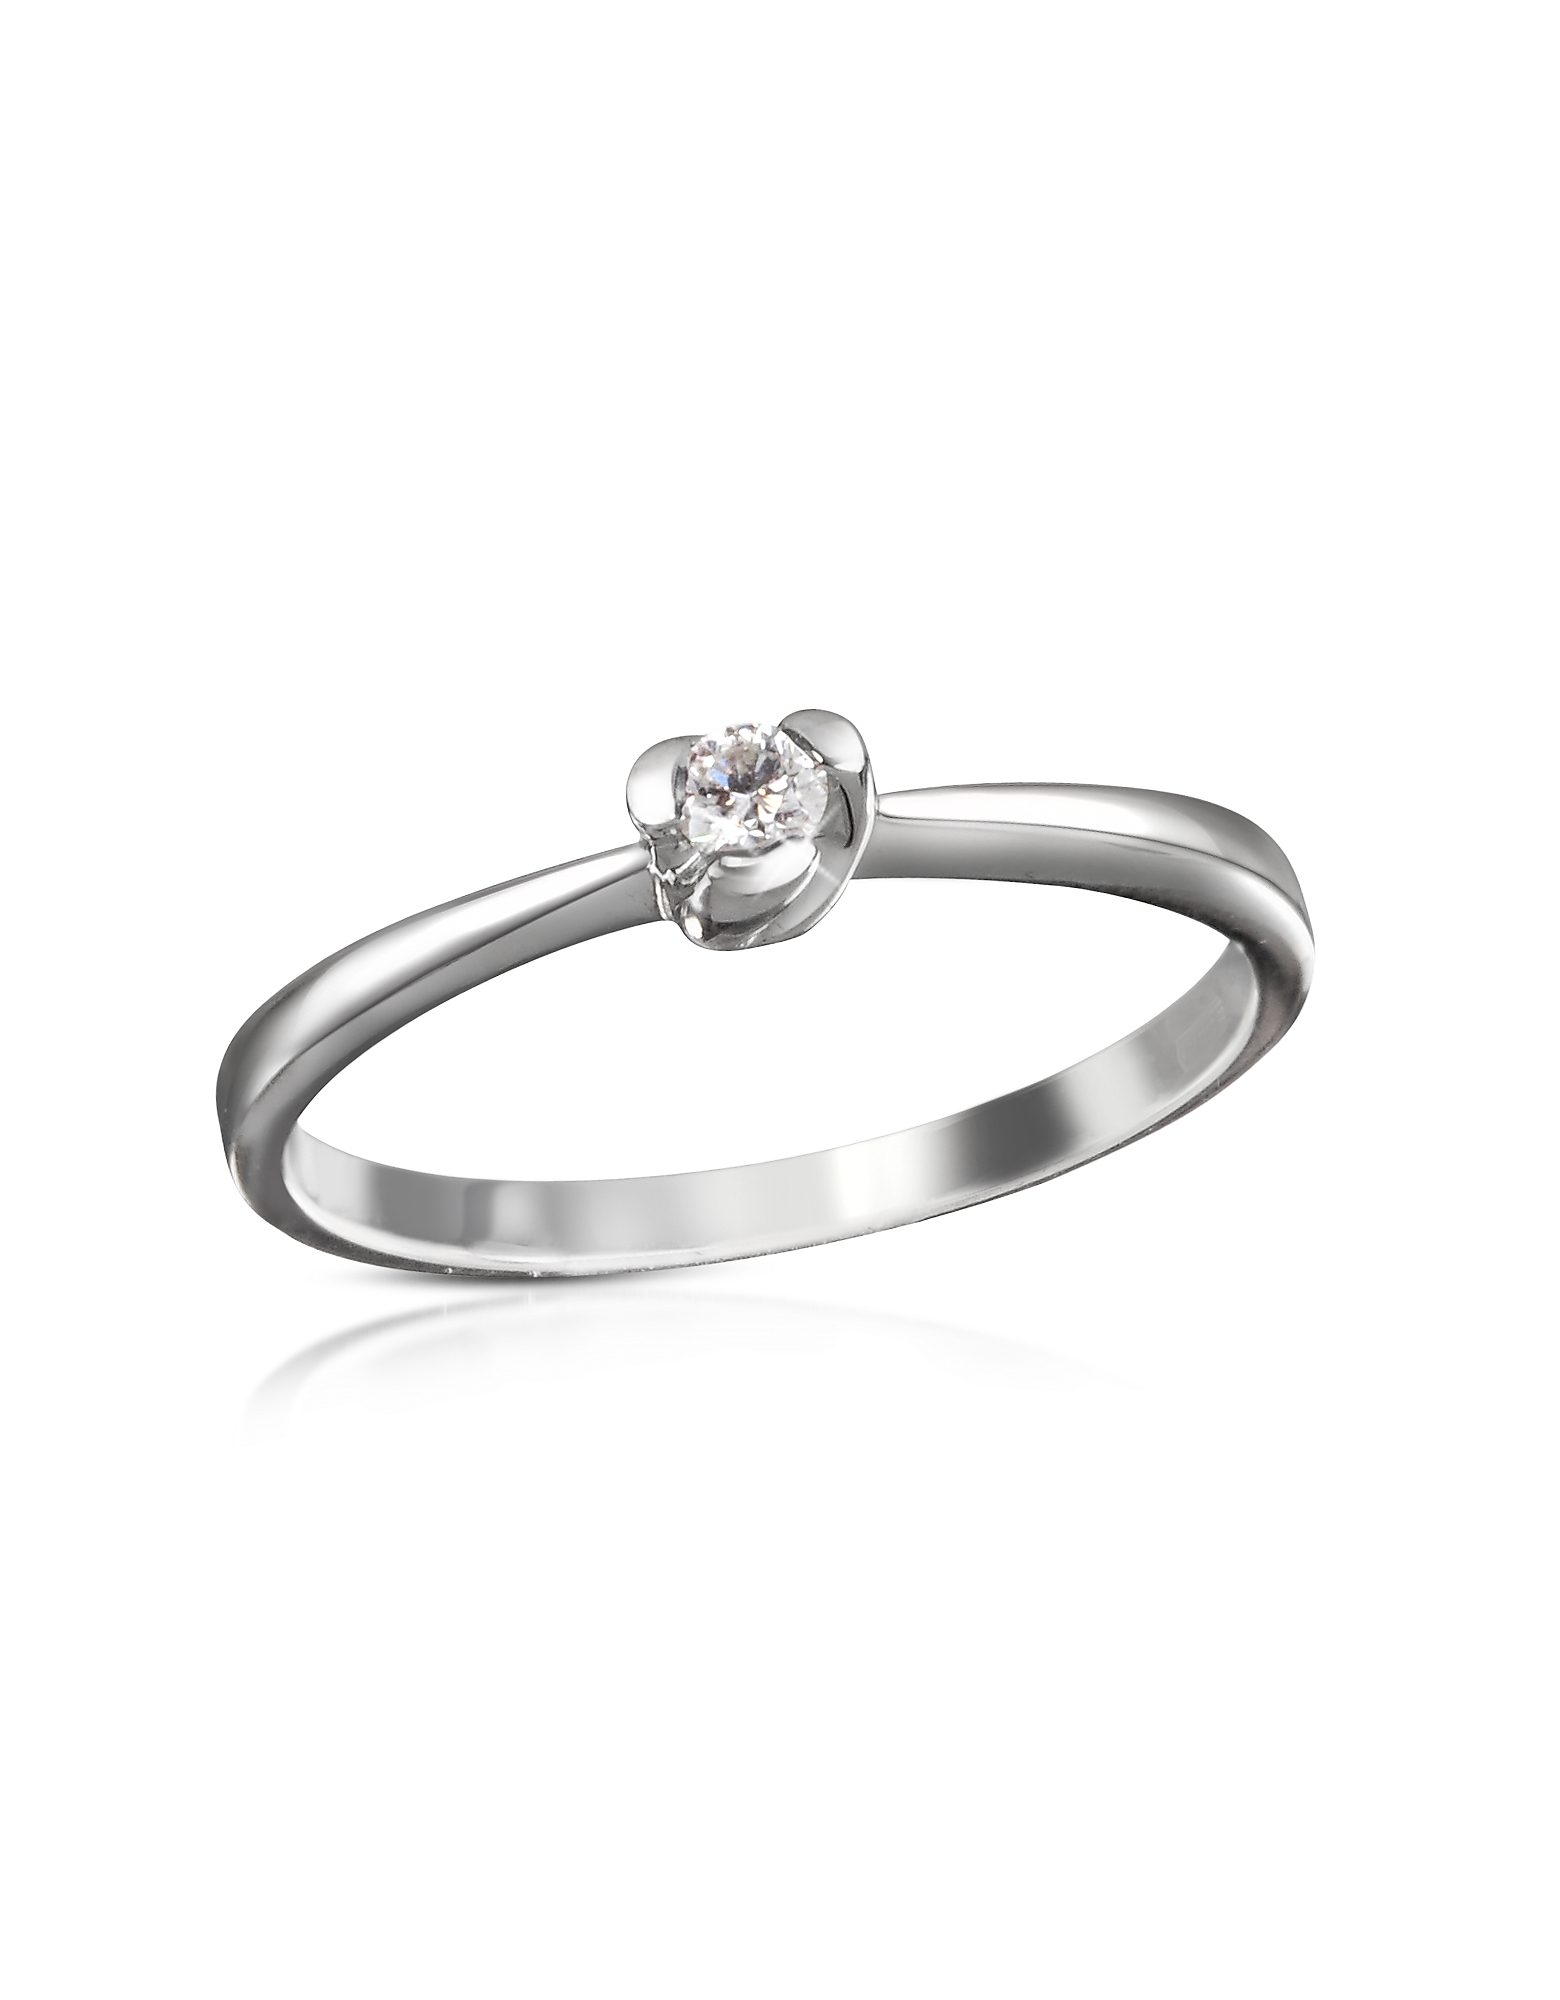 Forzieri Designer Rings, 0.08 ctw Diamond Solitaire Ring